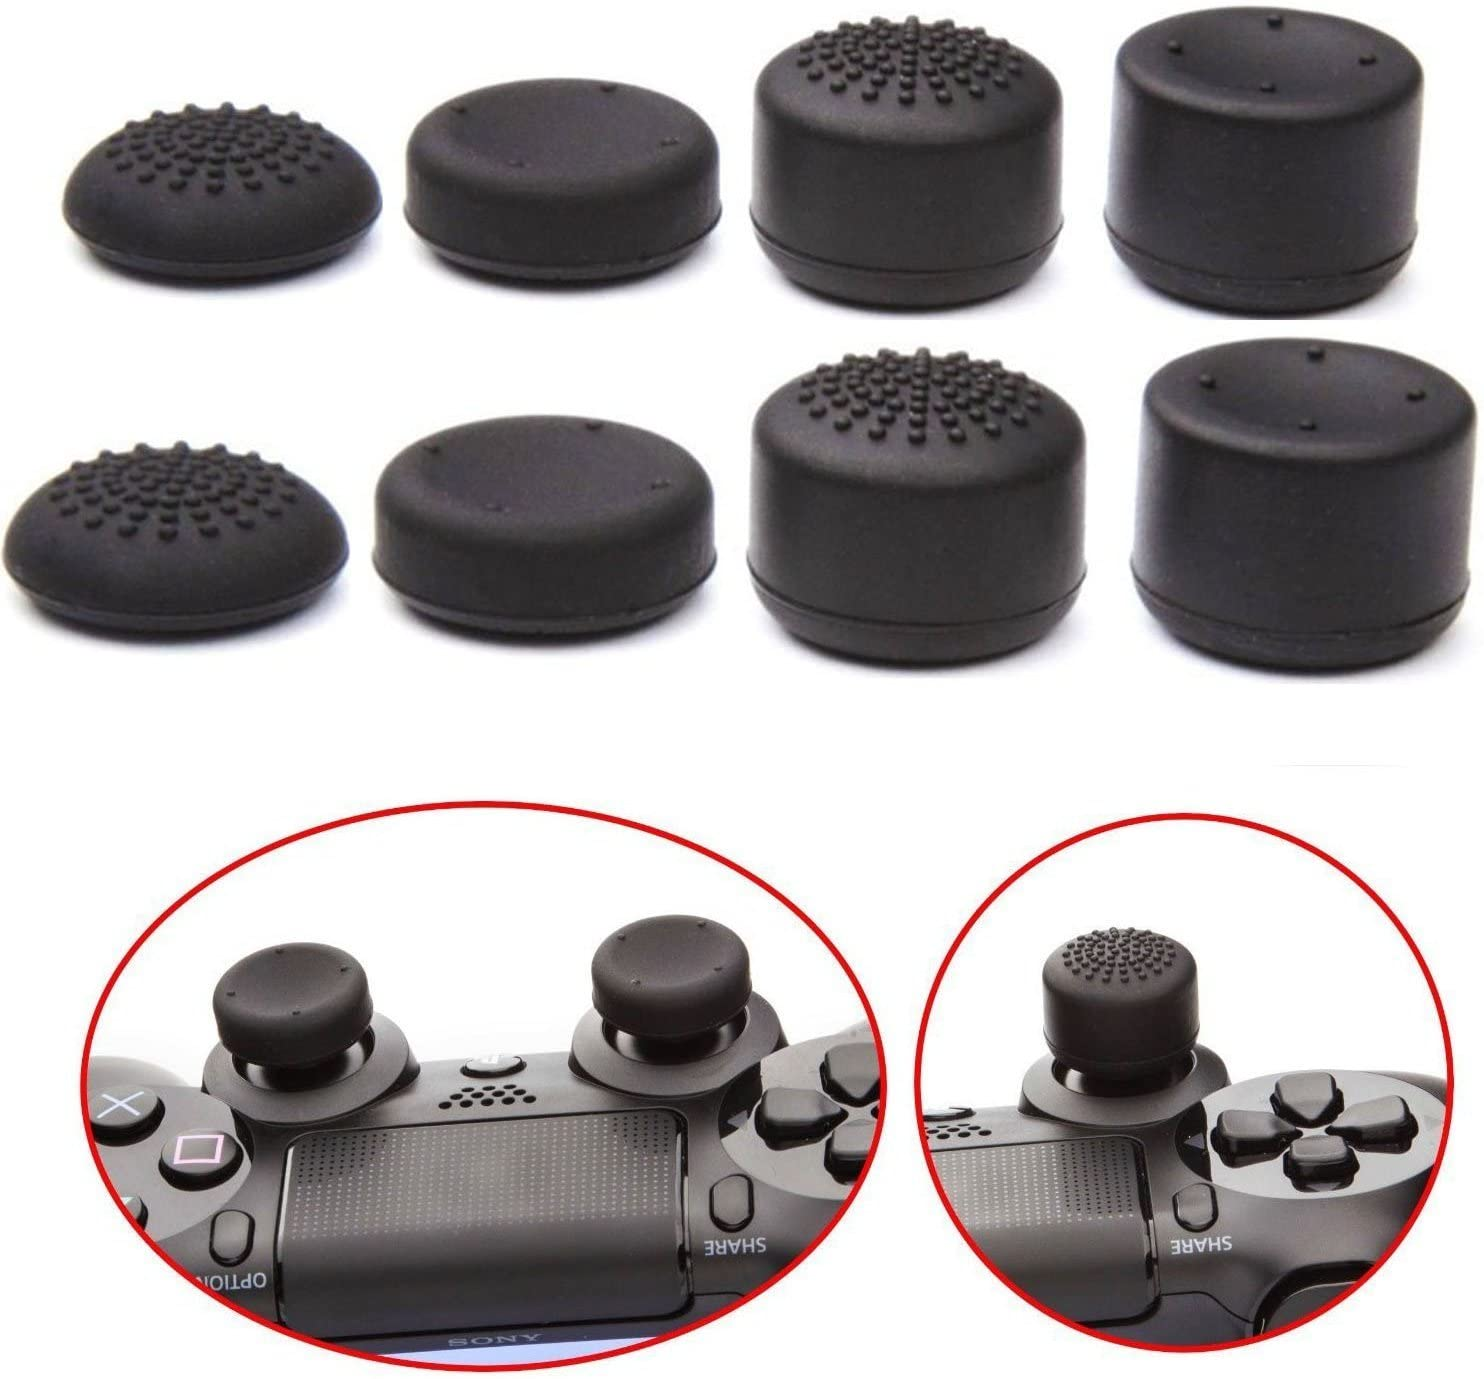 Heighten Extra Height Thumbstick Thumb Grip Stick Joystick Grips Silicone Rocker Cap For Xbox One / Xbox one Slim S / Xbox one X / xbox one elite Controller